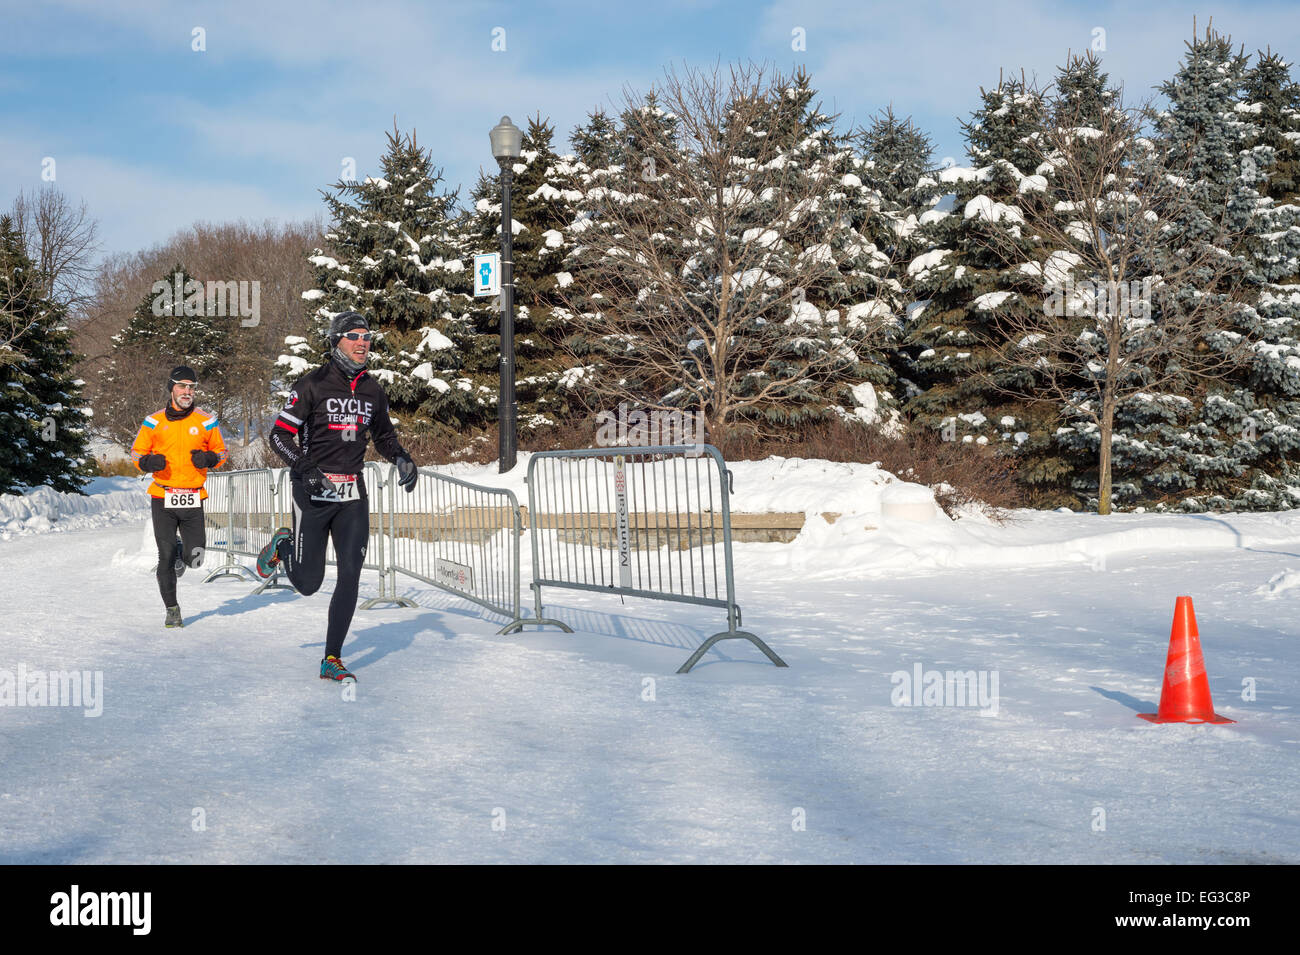 MONTREAL, CANADA, FEBRUARY 15: Unidentified runners during Hypothermic Half Marathon on February 15, 2015 in Montreal, - Stock Image